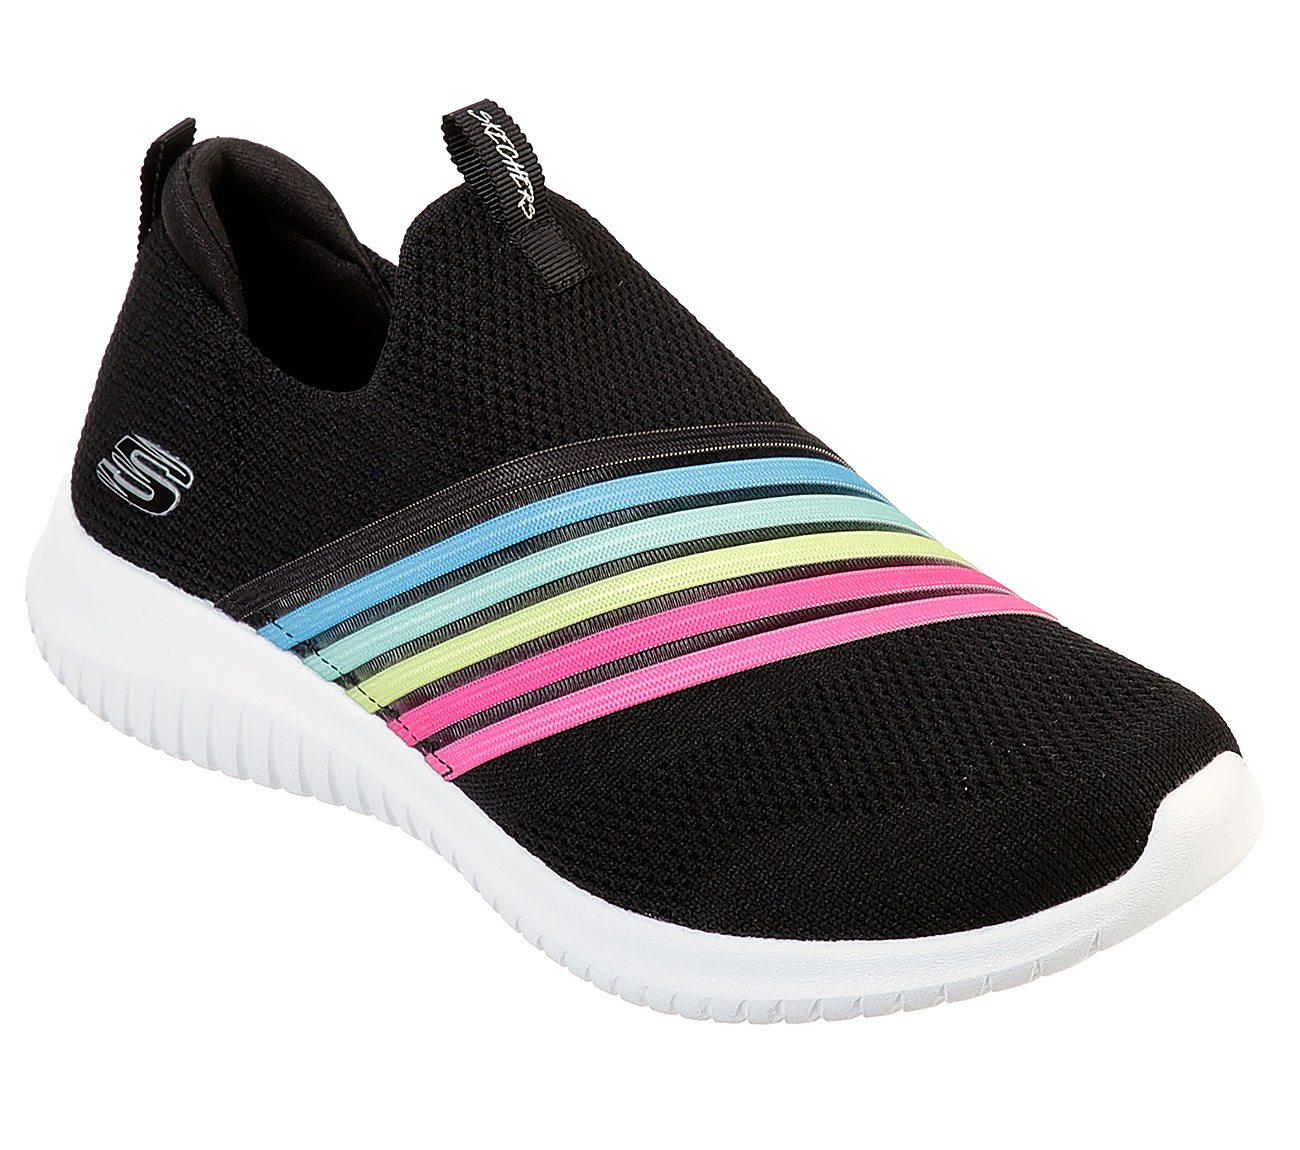 b3c0268b6b6d5 Buy SKECHERS Ultra Flex - Brightful Day SKECHERS Sport Shoes only £65.00